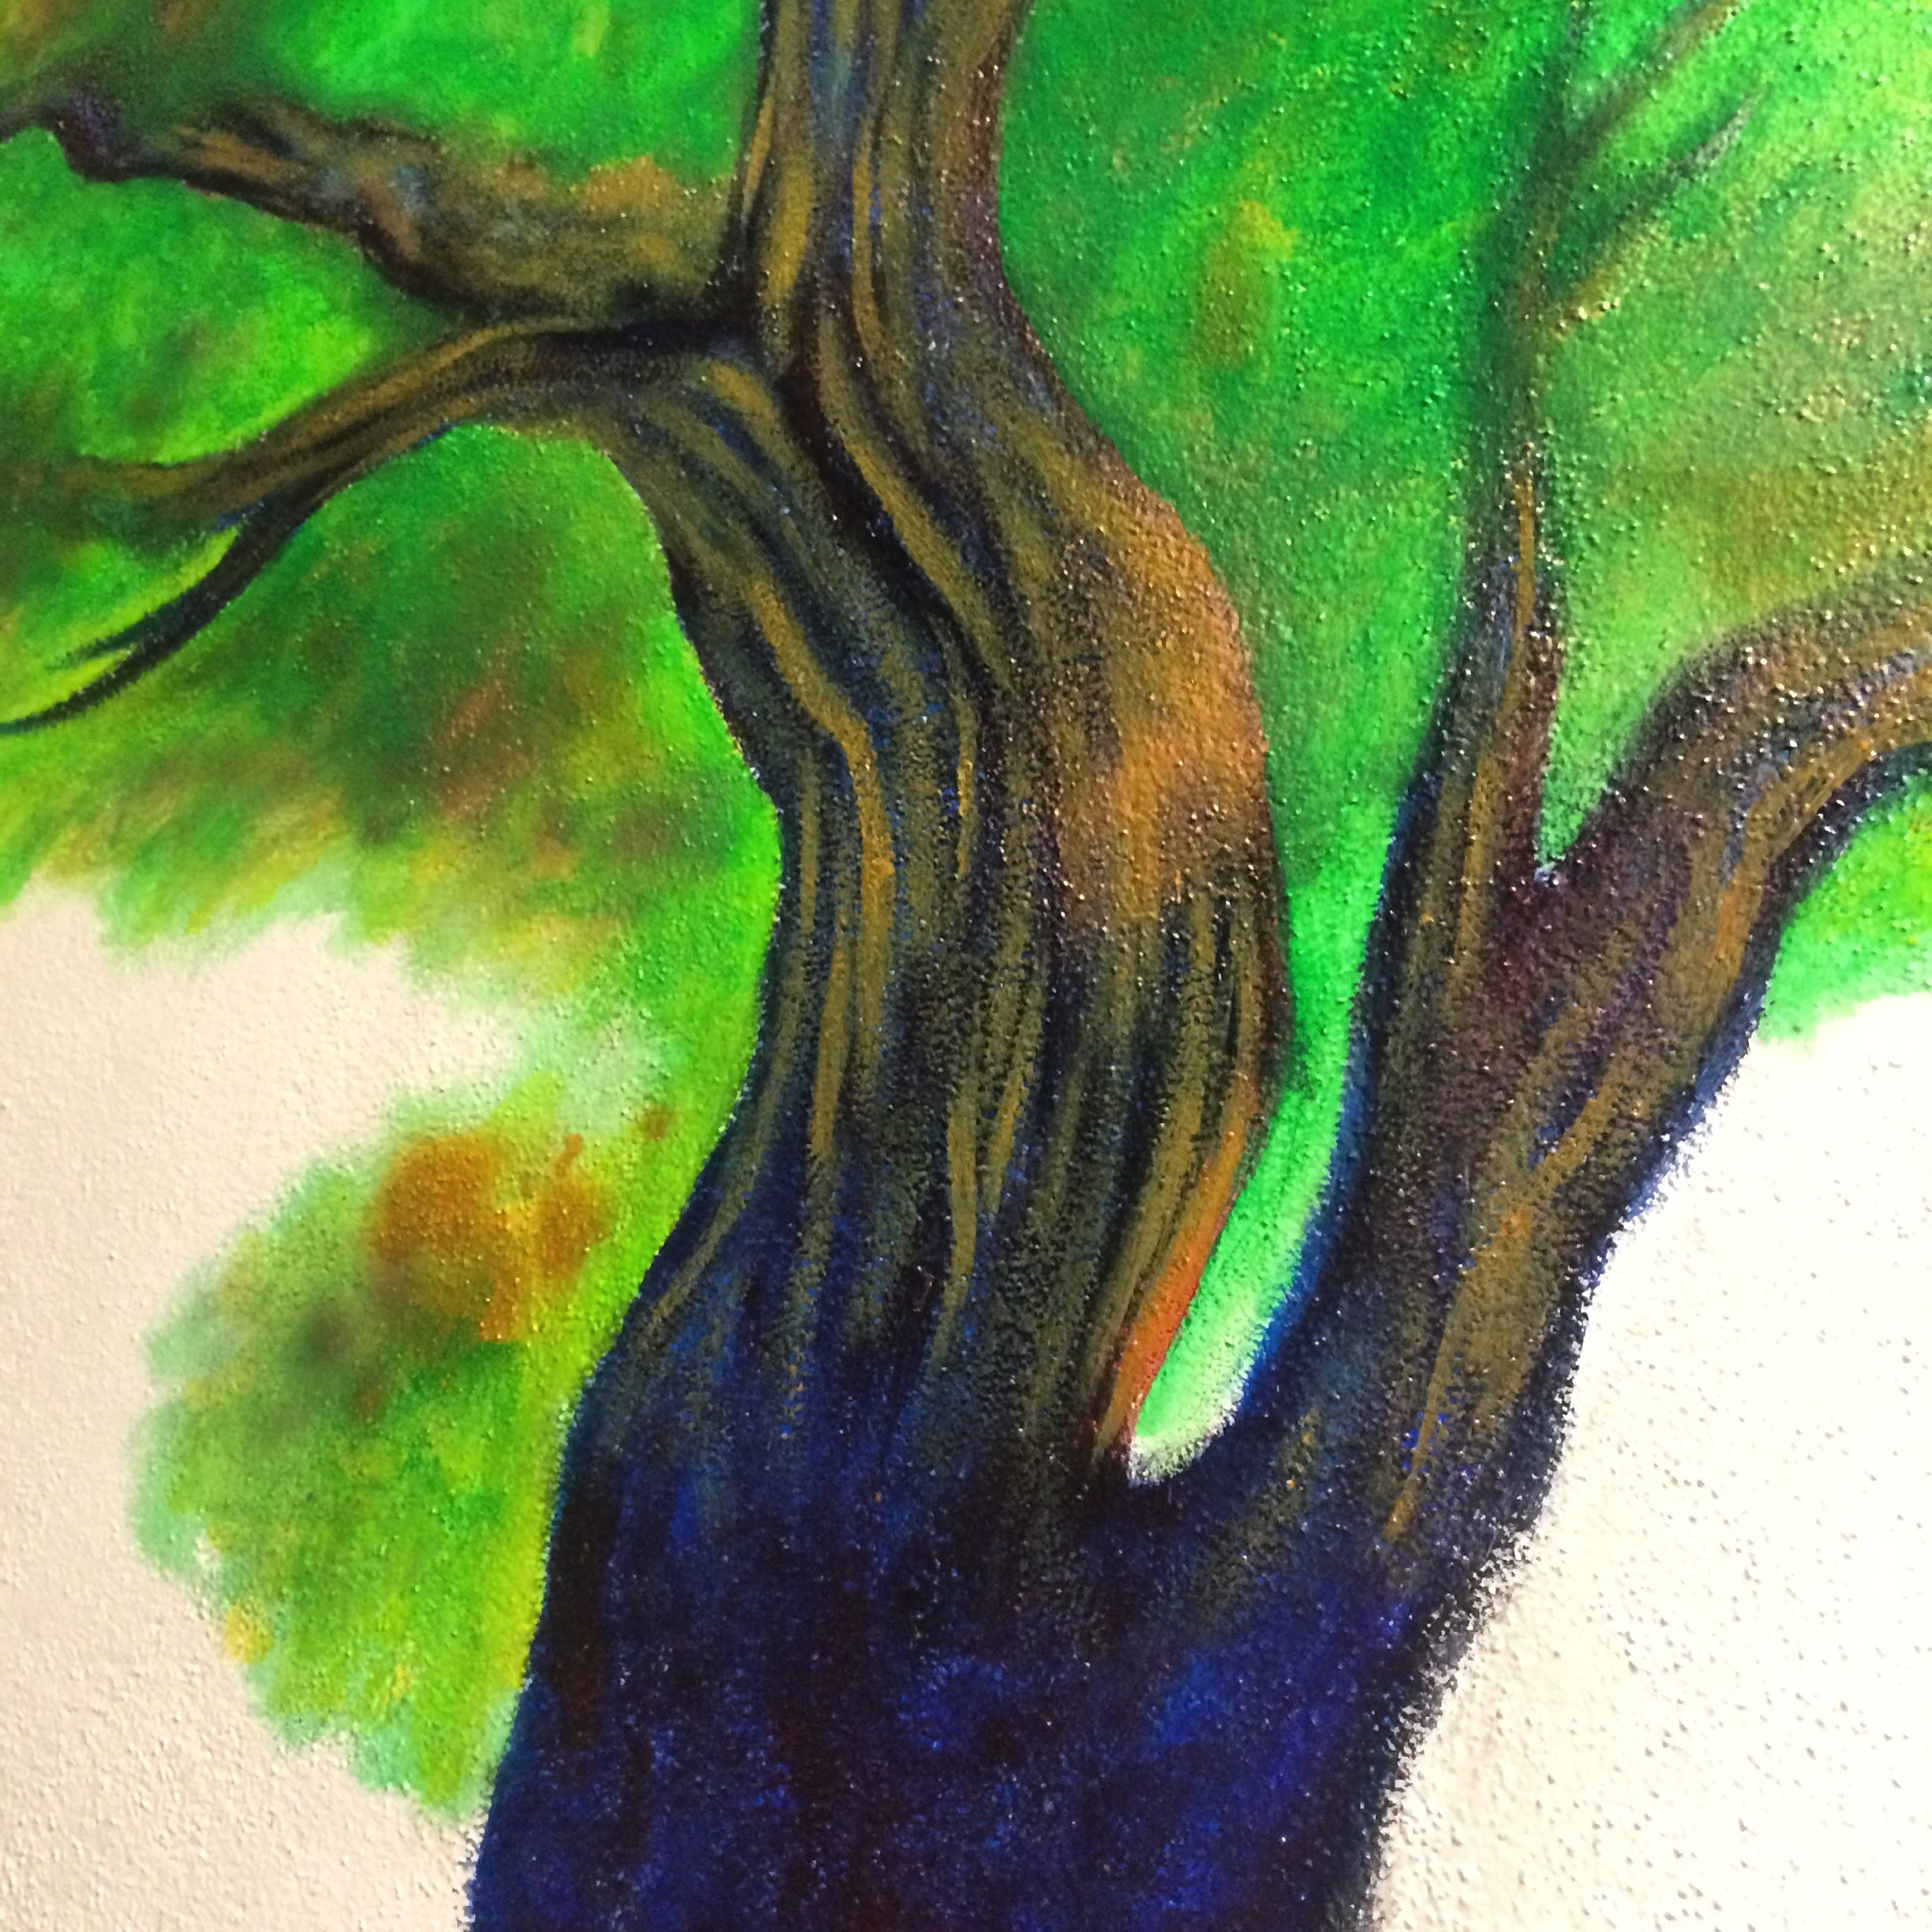 NHUMC Tree Mural (2017) - Documenting my process while I paint a mural at the Normal Heights United Methodist Church